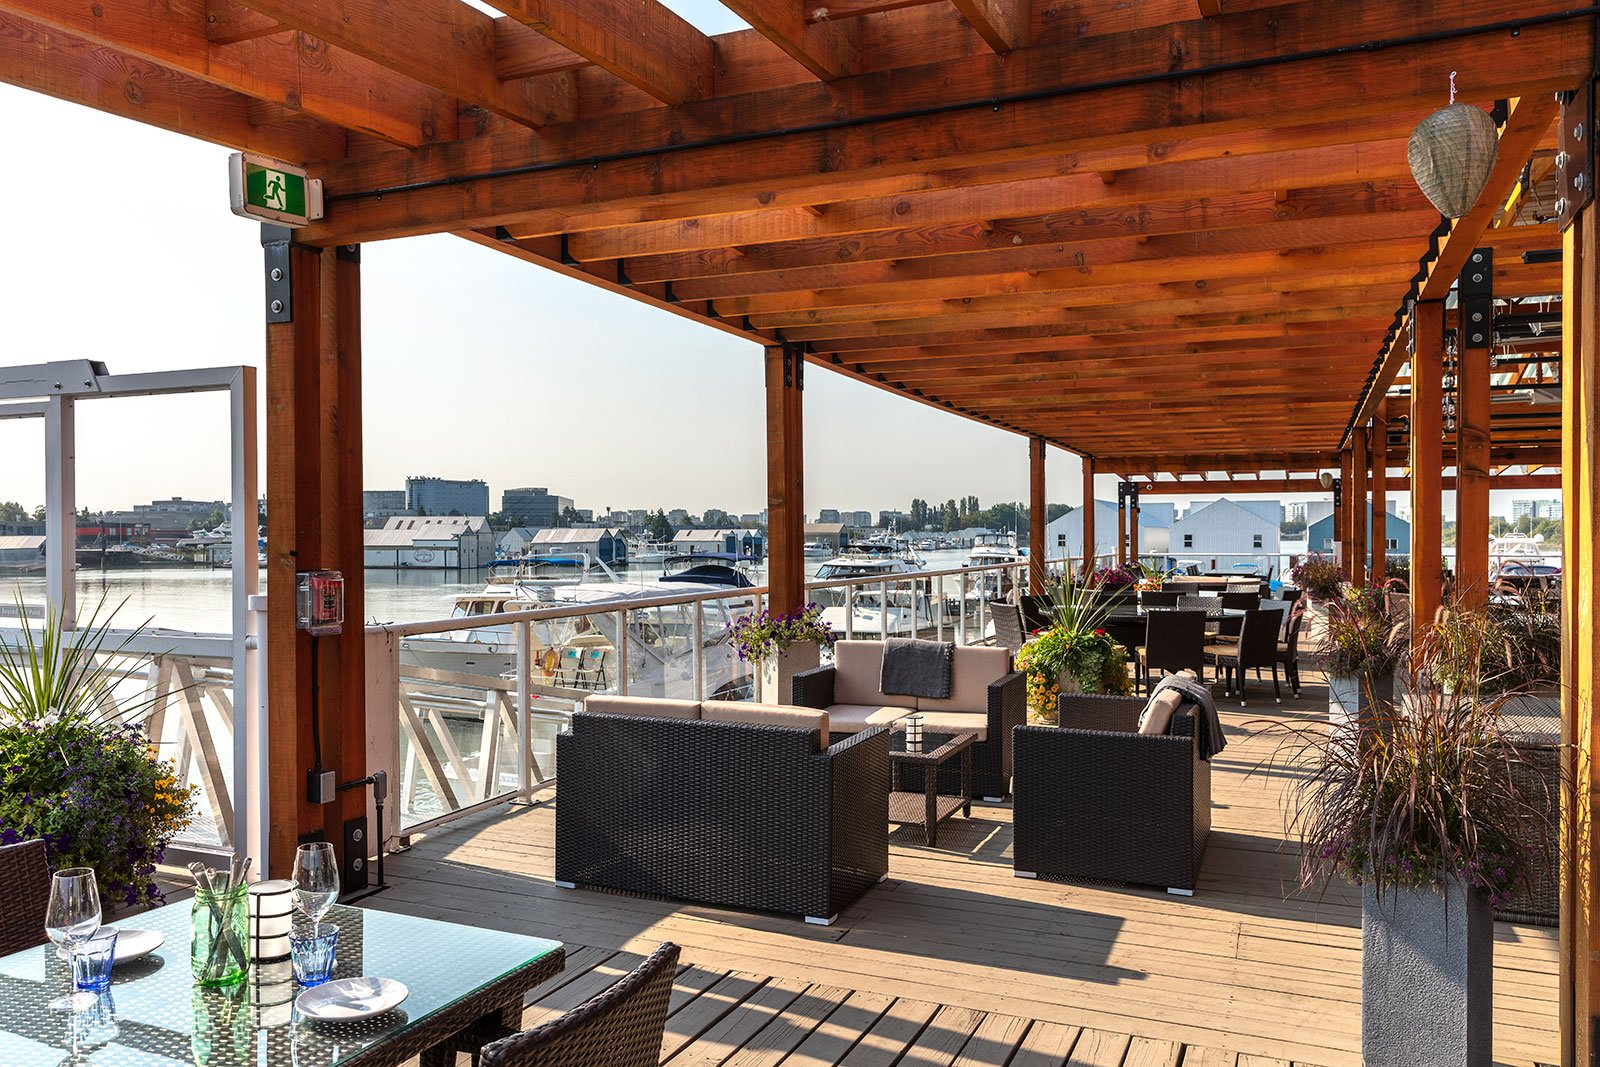 Kick Off Patio Season On The Largest Deck In The Lower